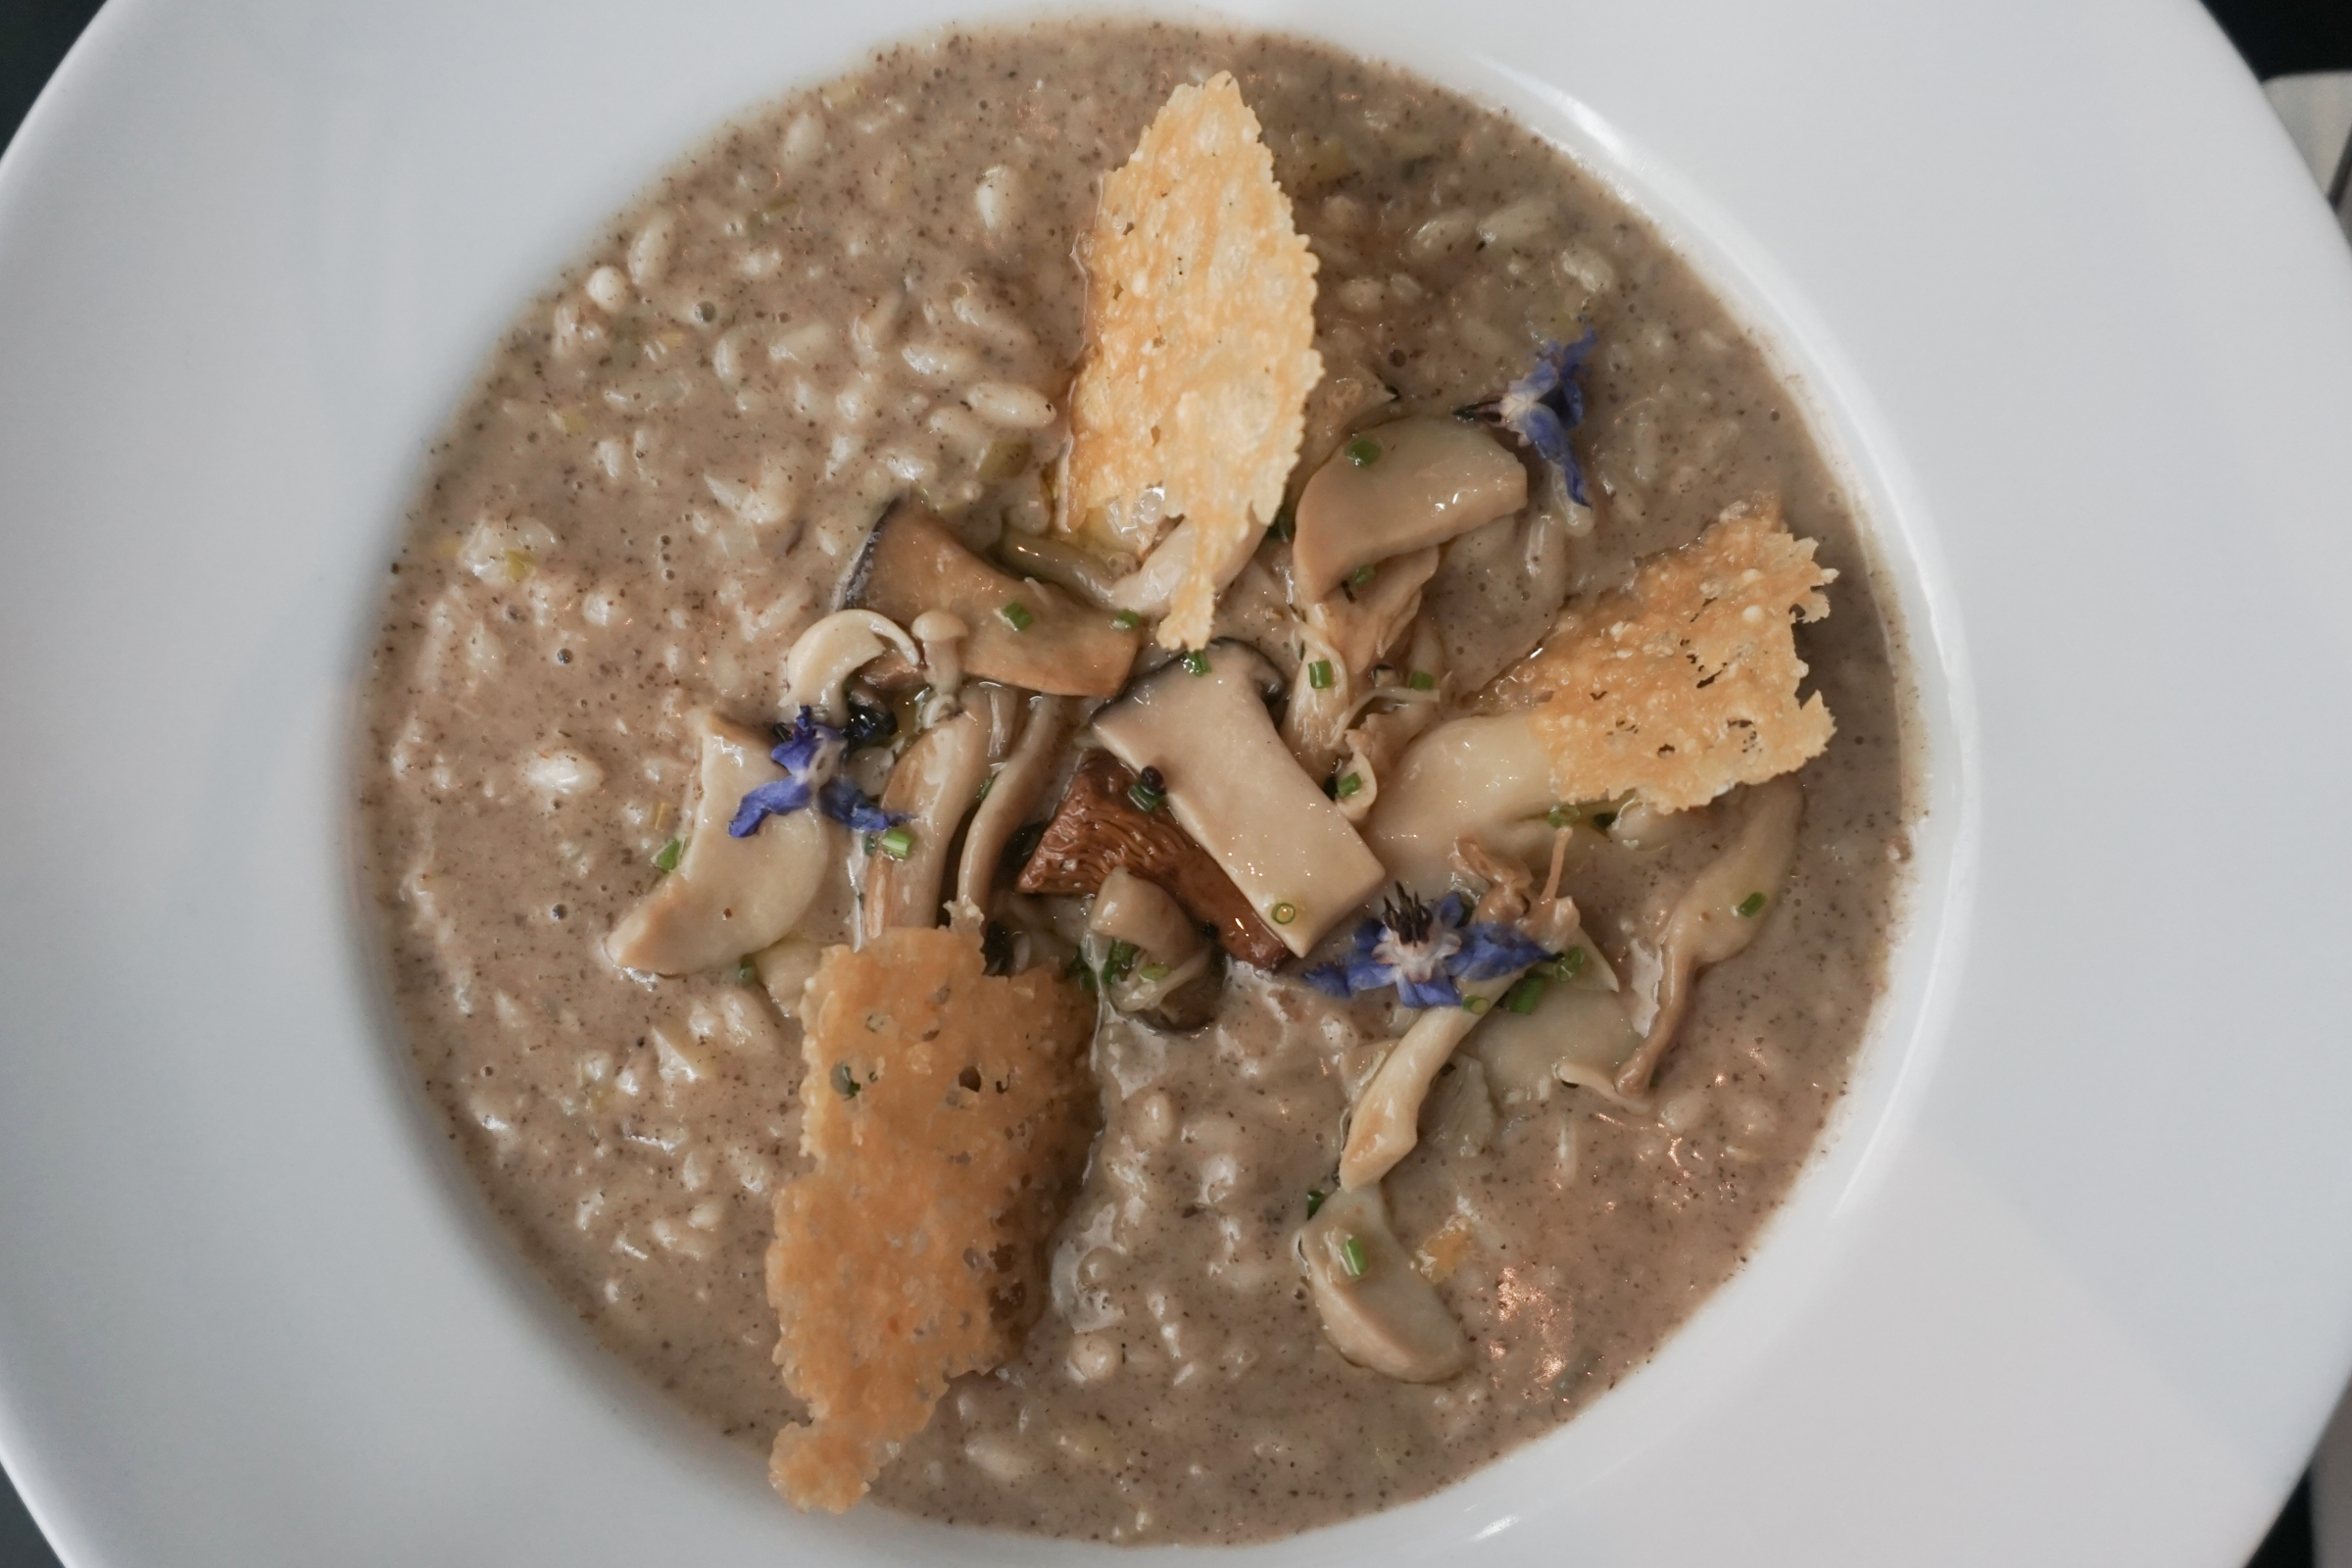 Risotto: It was simple and not overcooked; I really do not like it when risotto is overcooked. If you decide to go for the risotto with wild mushrooms, skip the starter. Or else, you might be too full.